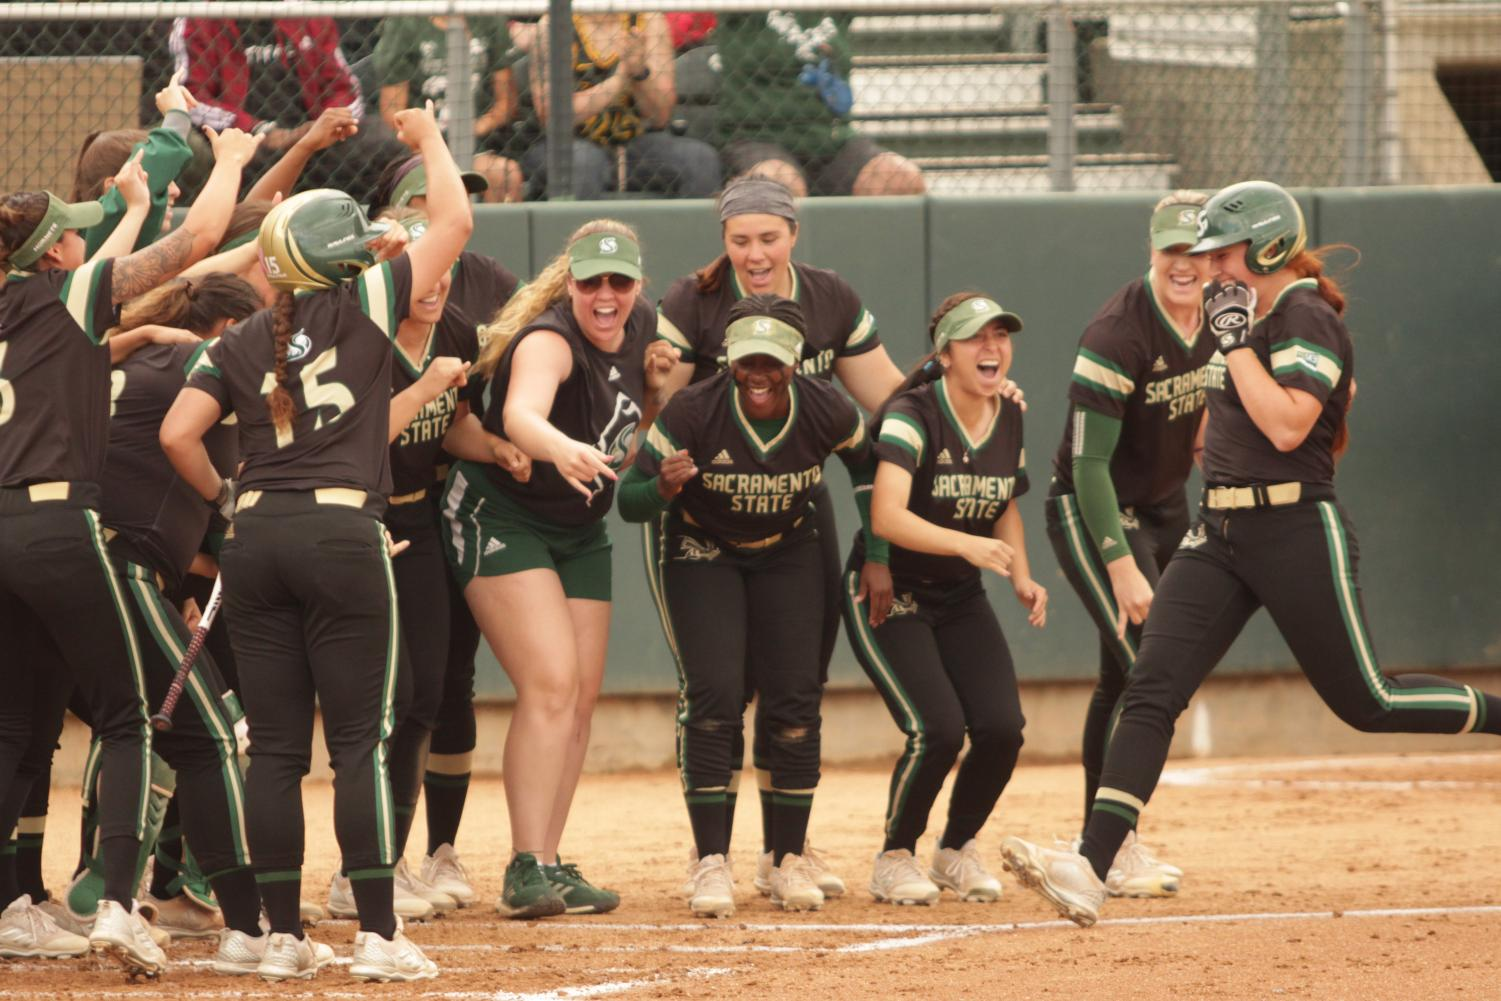 The Sacramento State softball team celebrates with sophomore outfielder Suzy Brookshire, right, after she hit a home run against the University of North Dakota at Shea Stadium on Saturday, April 28, 2018. The Hornets defeated North Dakota 4-1.